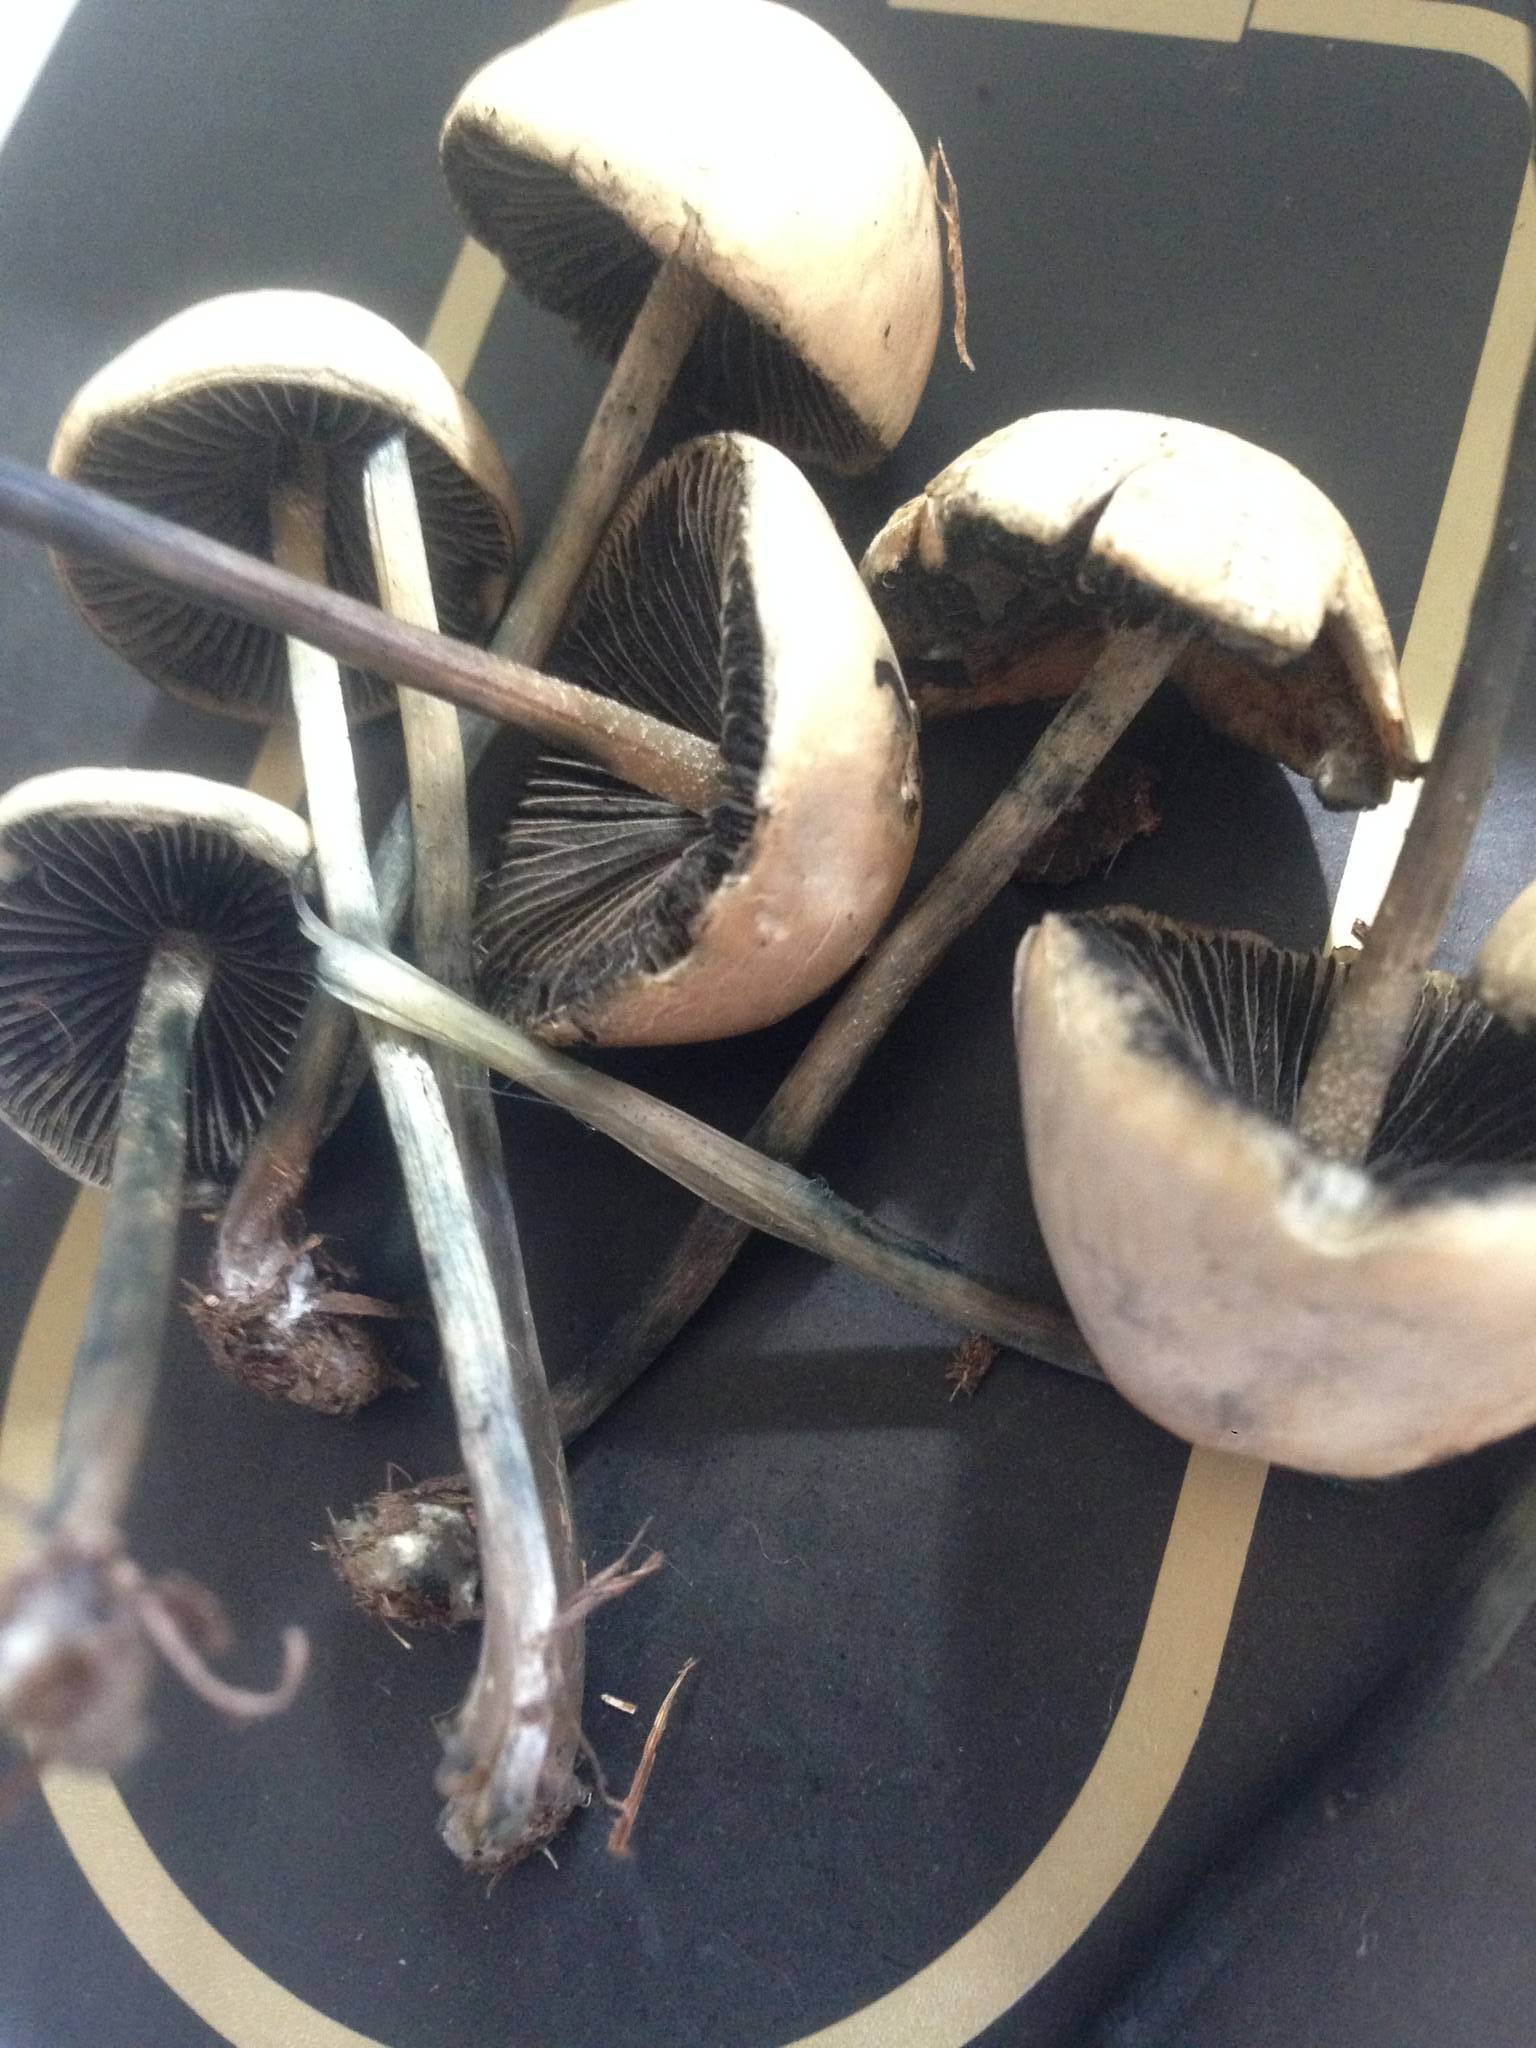 Help Identifying These Mushrooms Are They Psychedelic